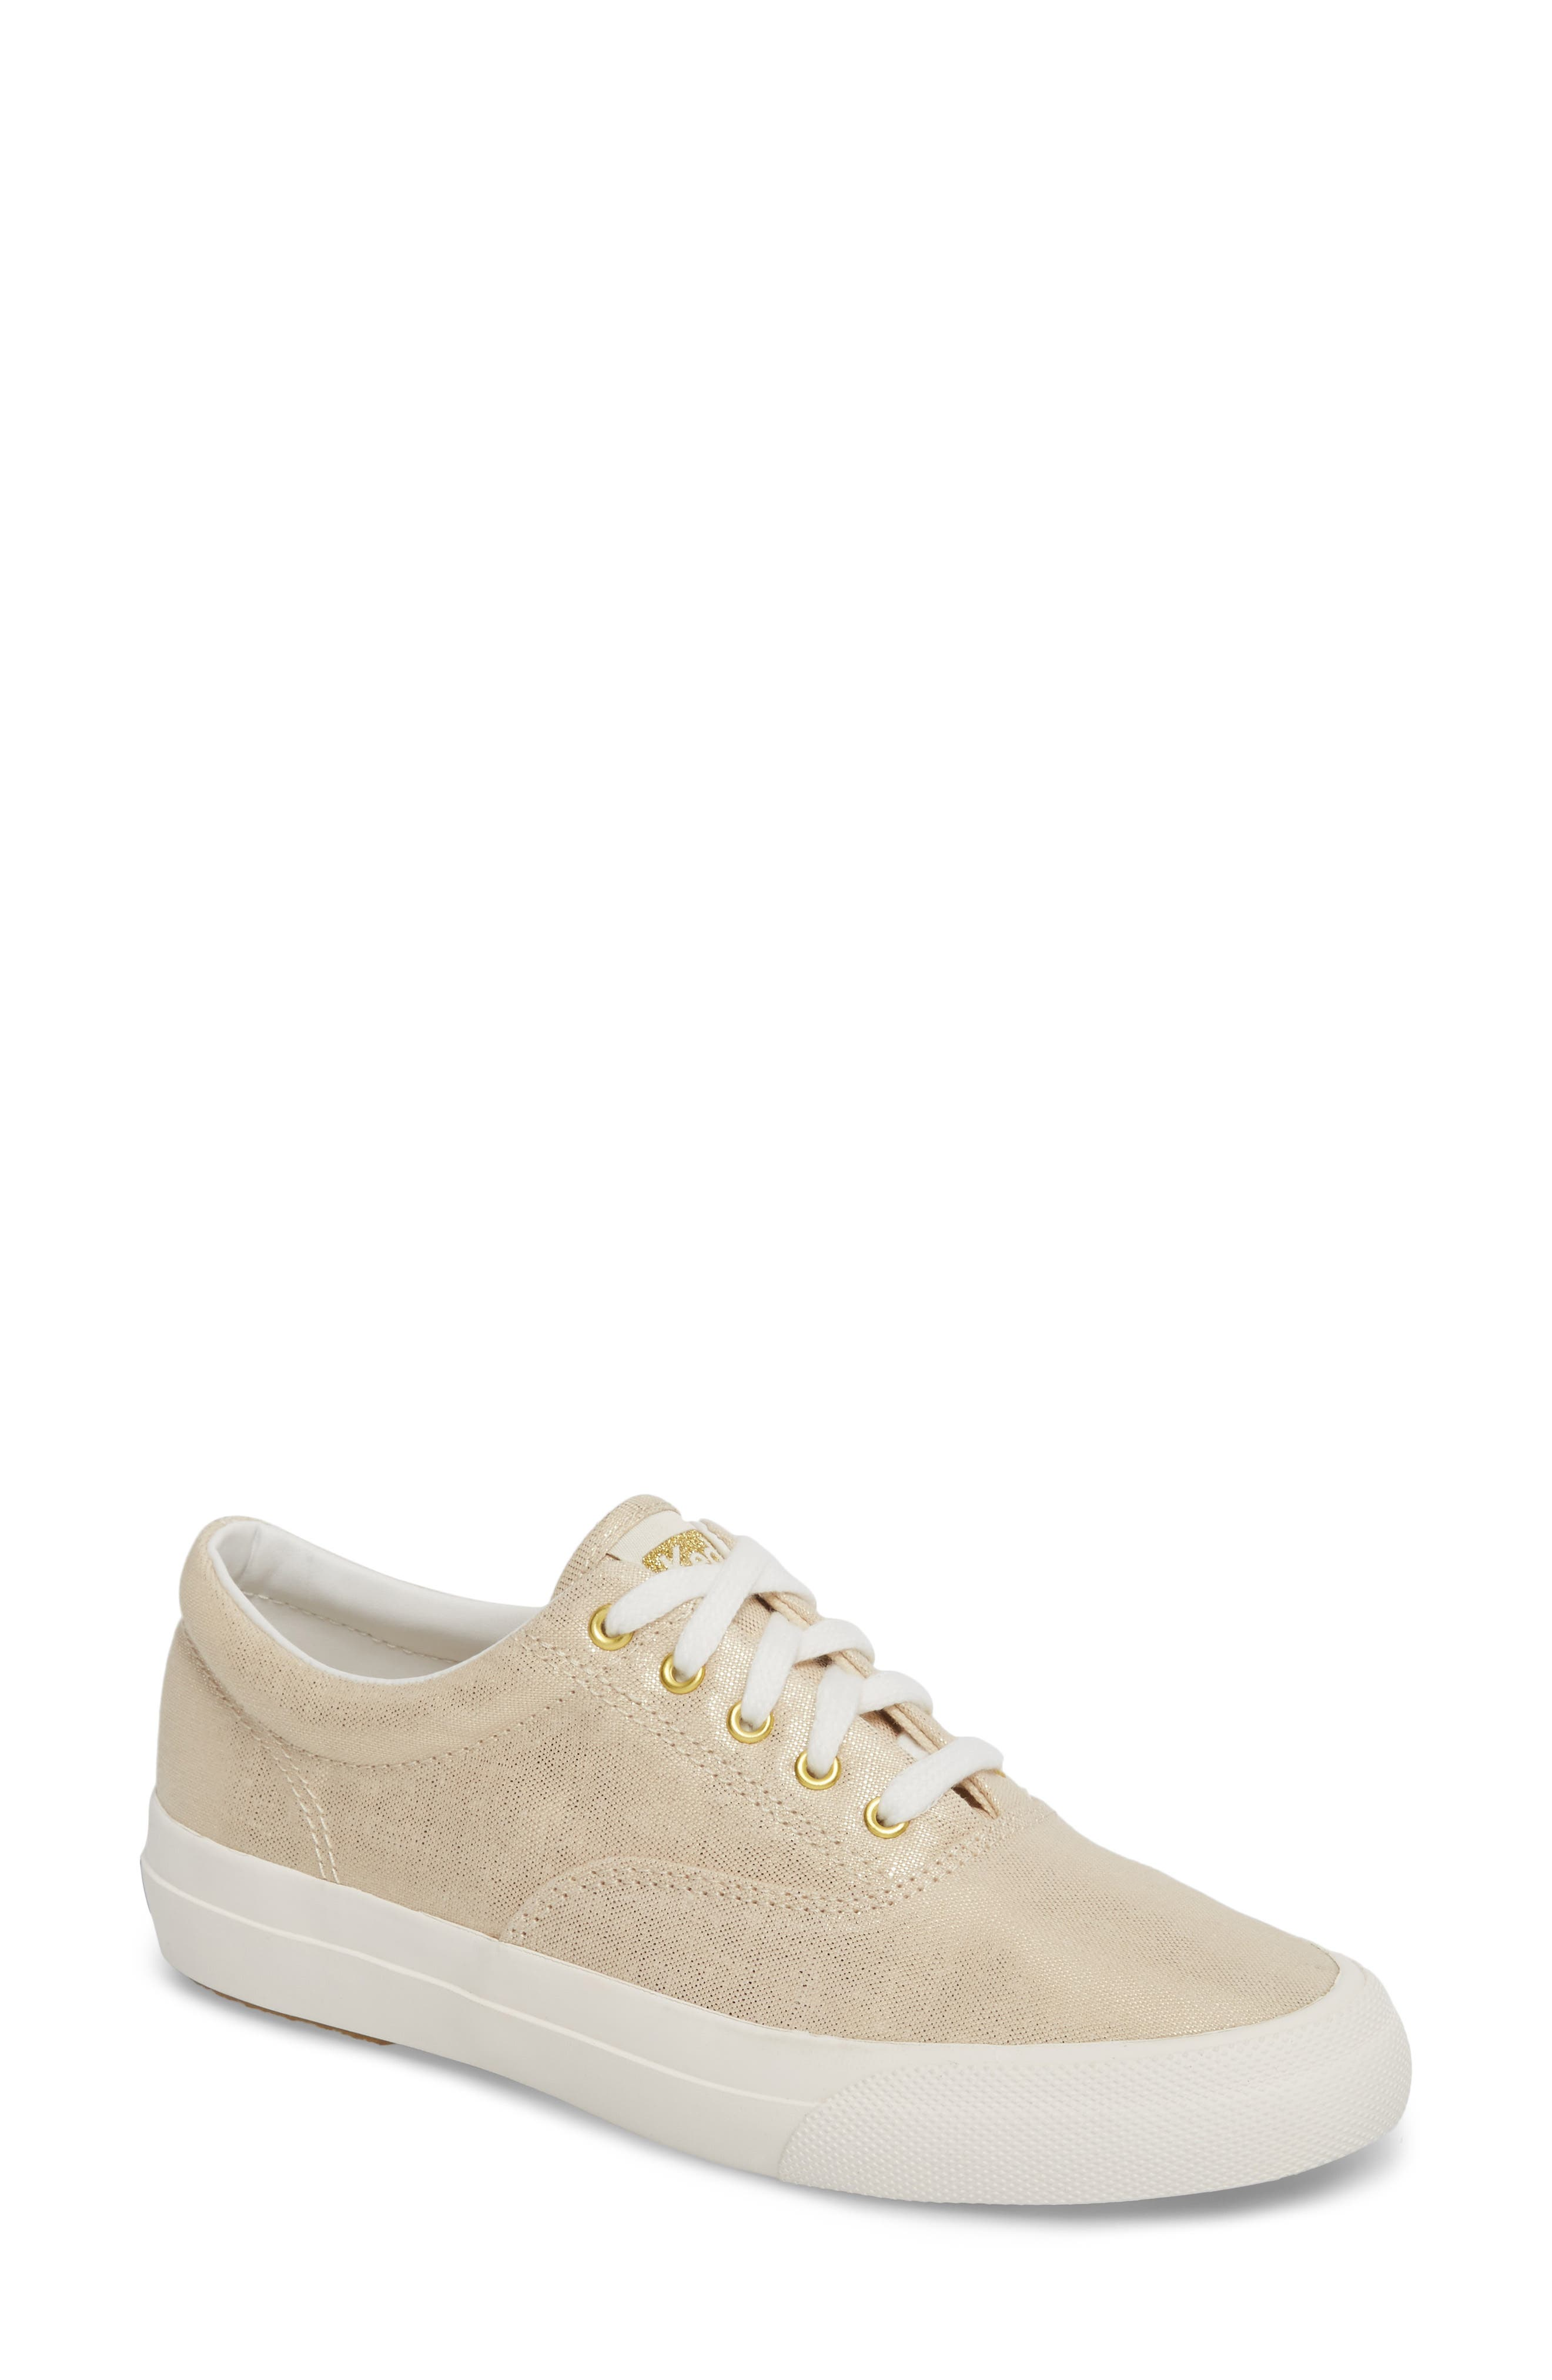 Anchor Metallic Linen Sneaker,                             Main thumbnail 1, color,                             710